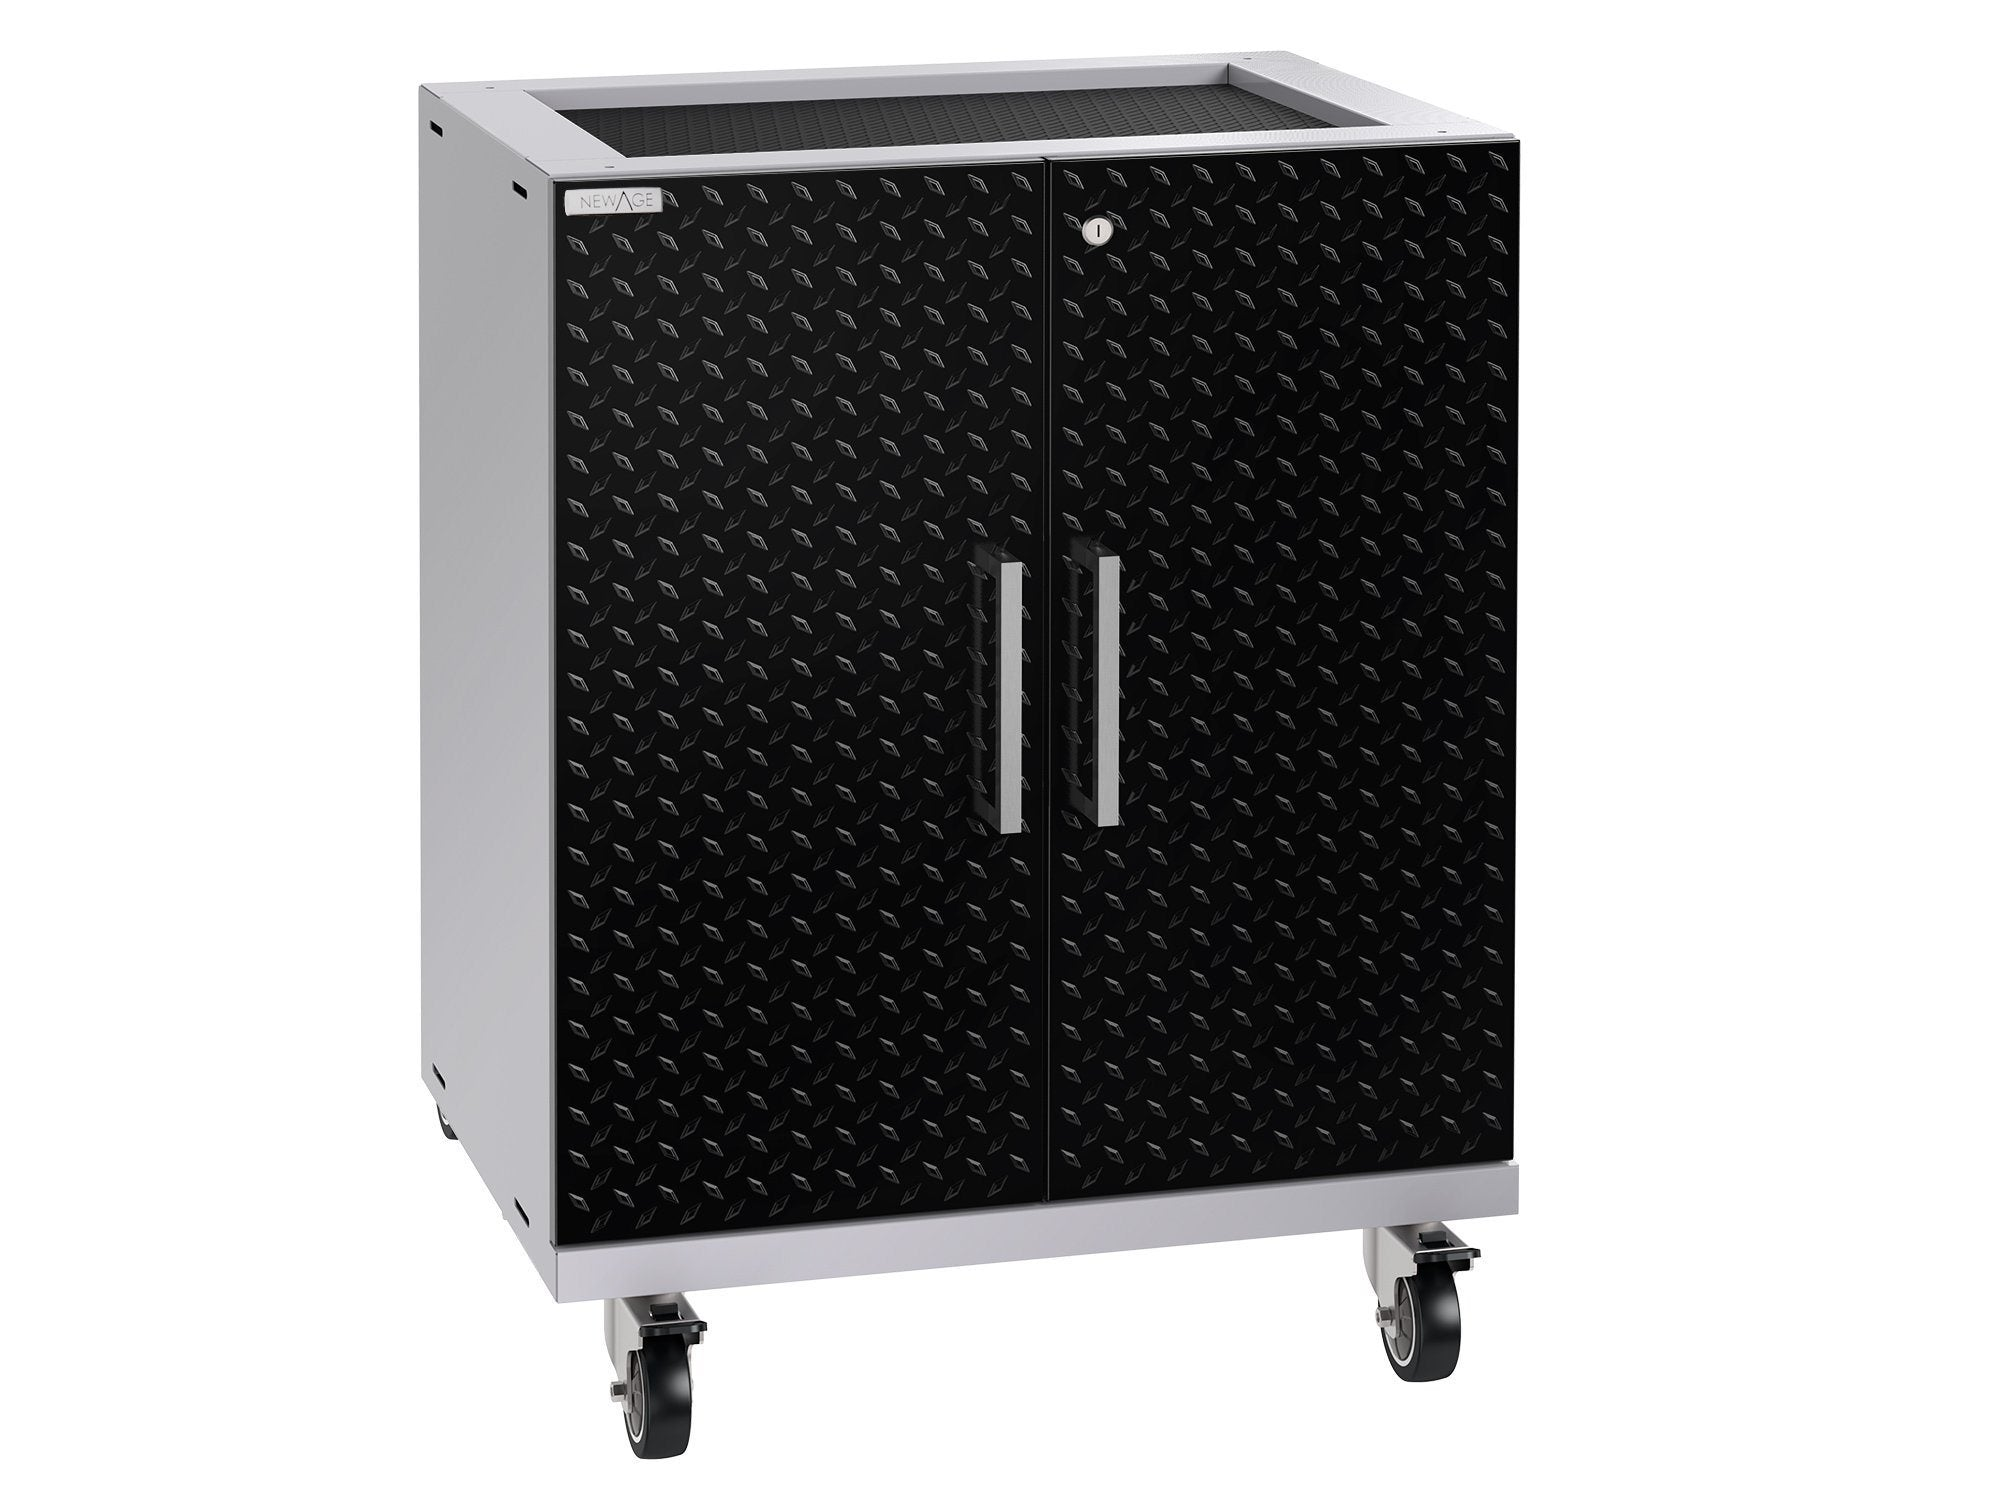 NewAge Performance Plus 2.0 Diamond Plate Black Base Cabinet - 55002